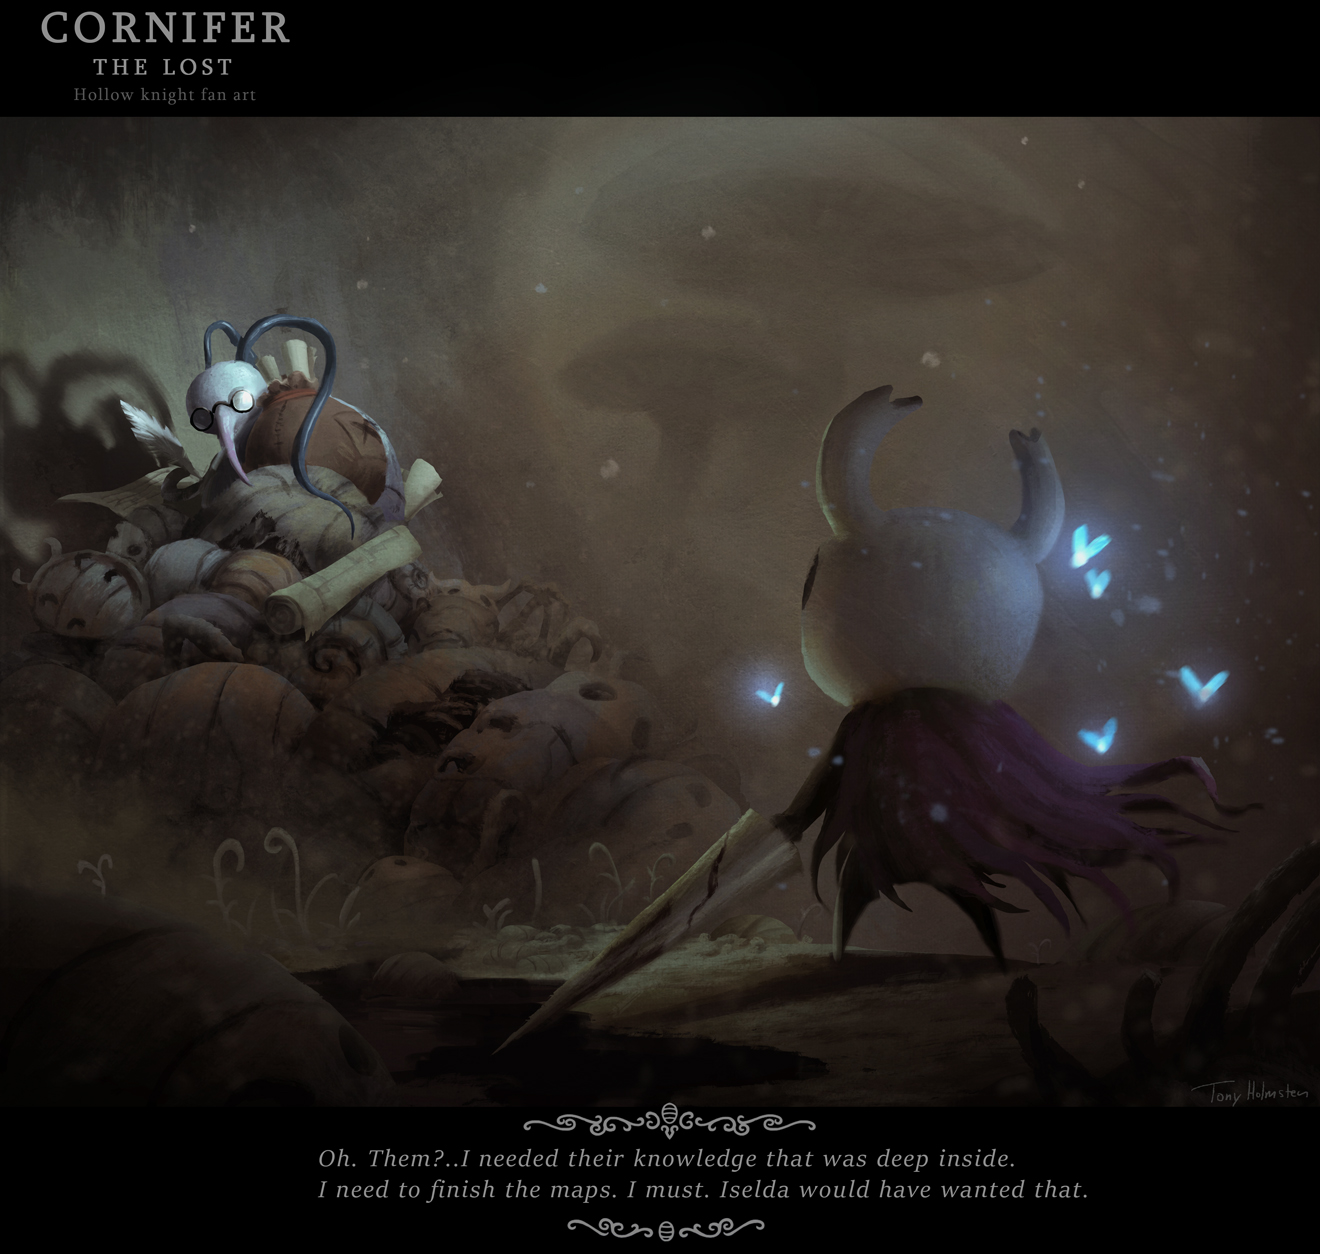 Hollow Knight fanart. I had this idea that Cornifer had gone mad from grief after Iselda passed away.